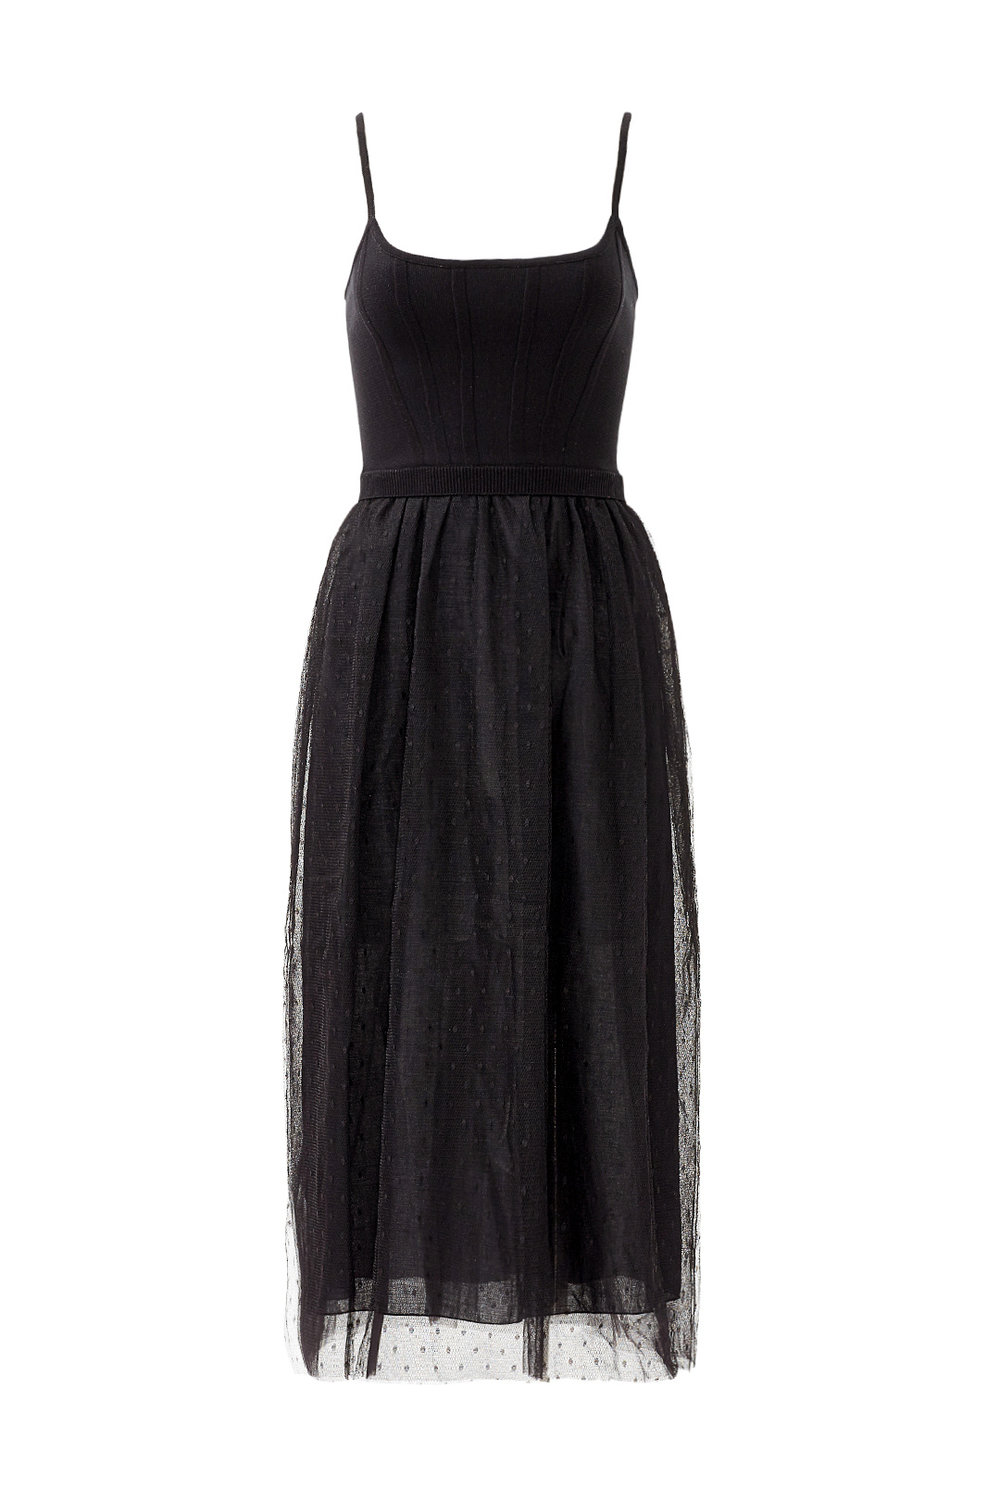 Black Balletic Dress by RED Valentino - Why It Works:  What's better than a LBD? It's classic, it's fun and neutral!